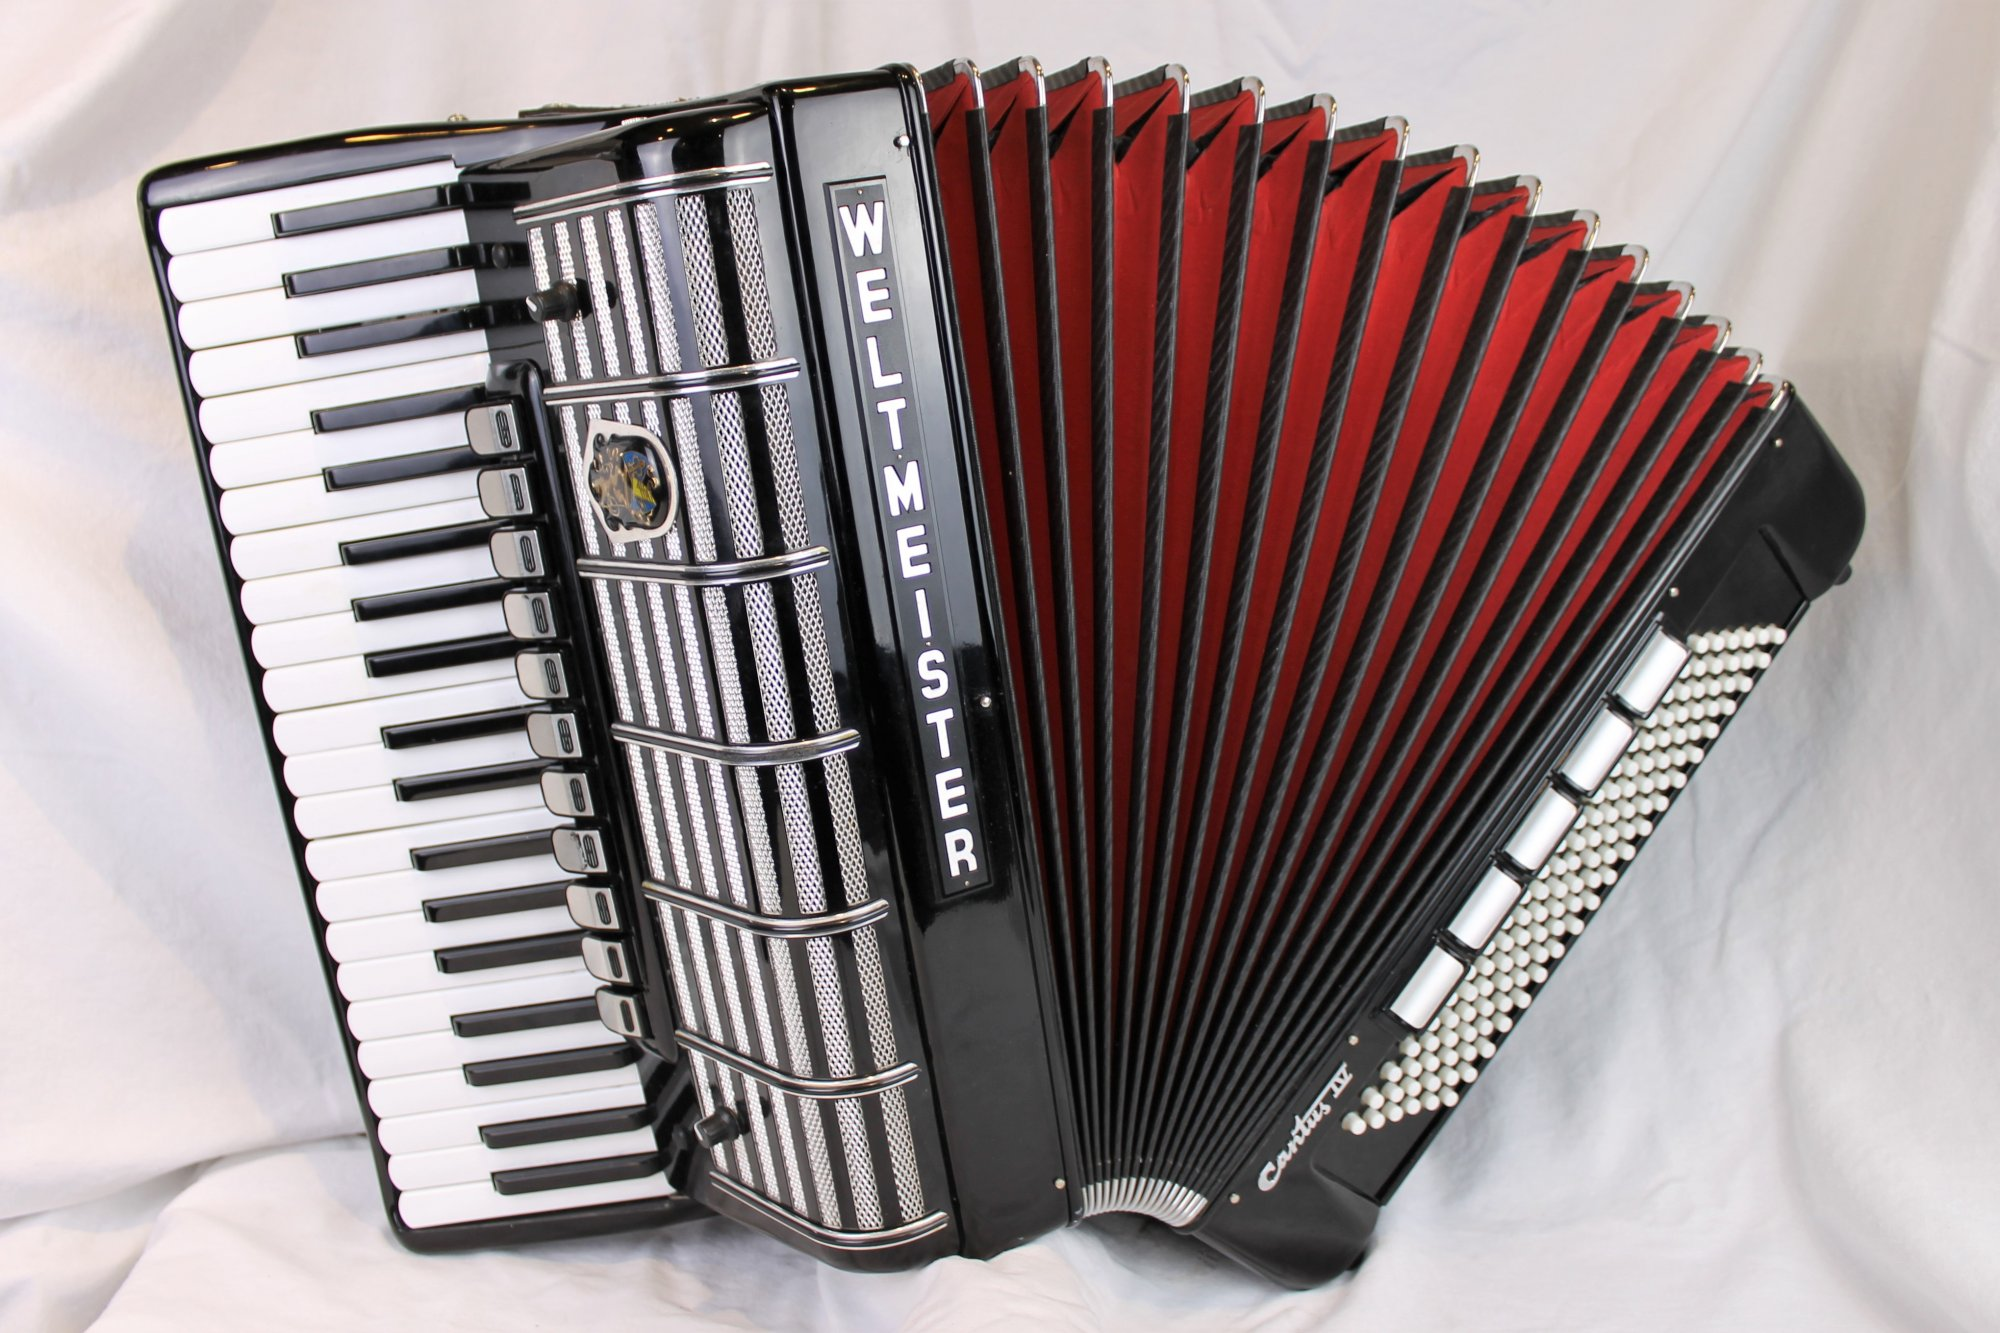 4646 - Black Weltmeister Cantus IV Piano Accordion LMMH 41 120